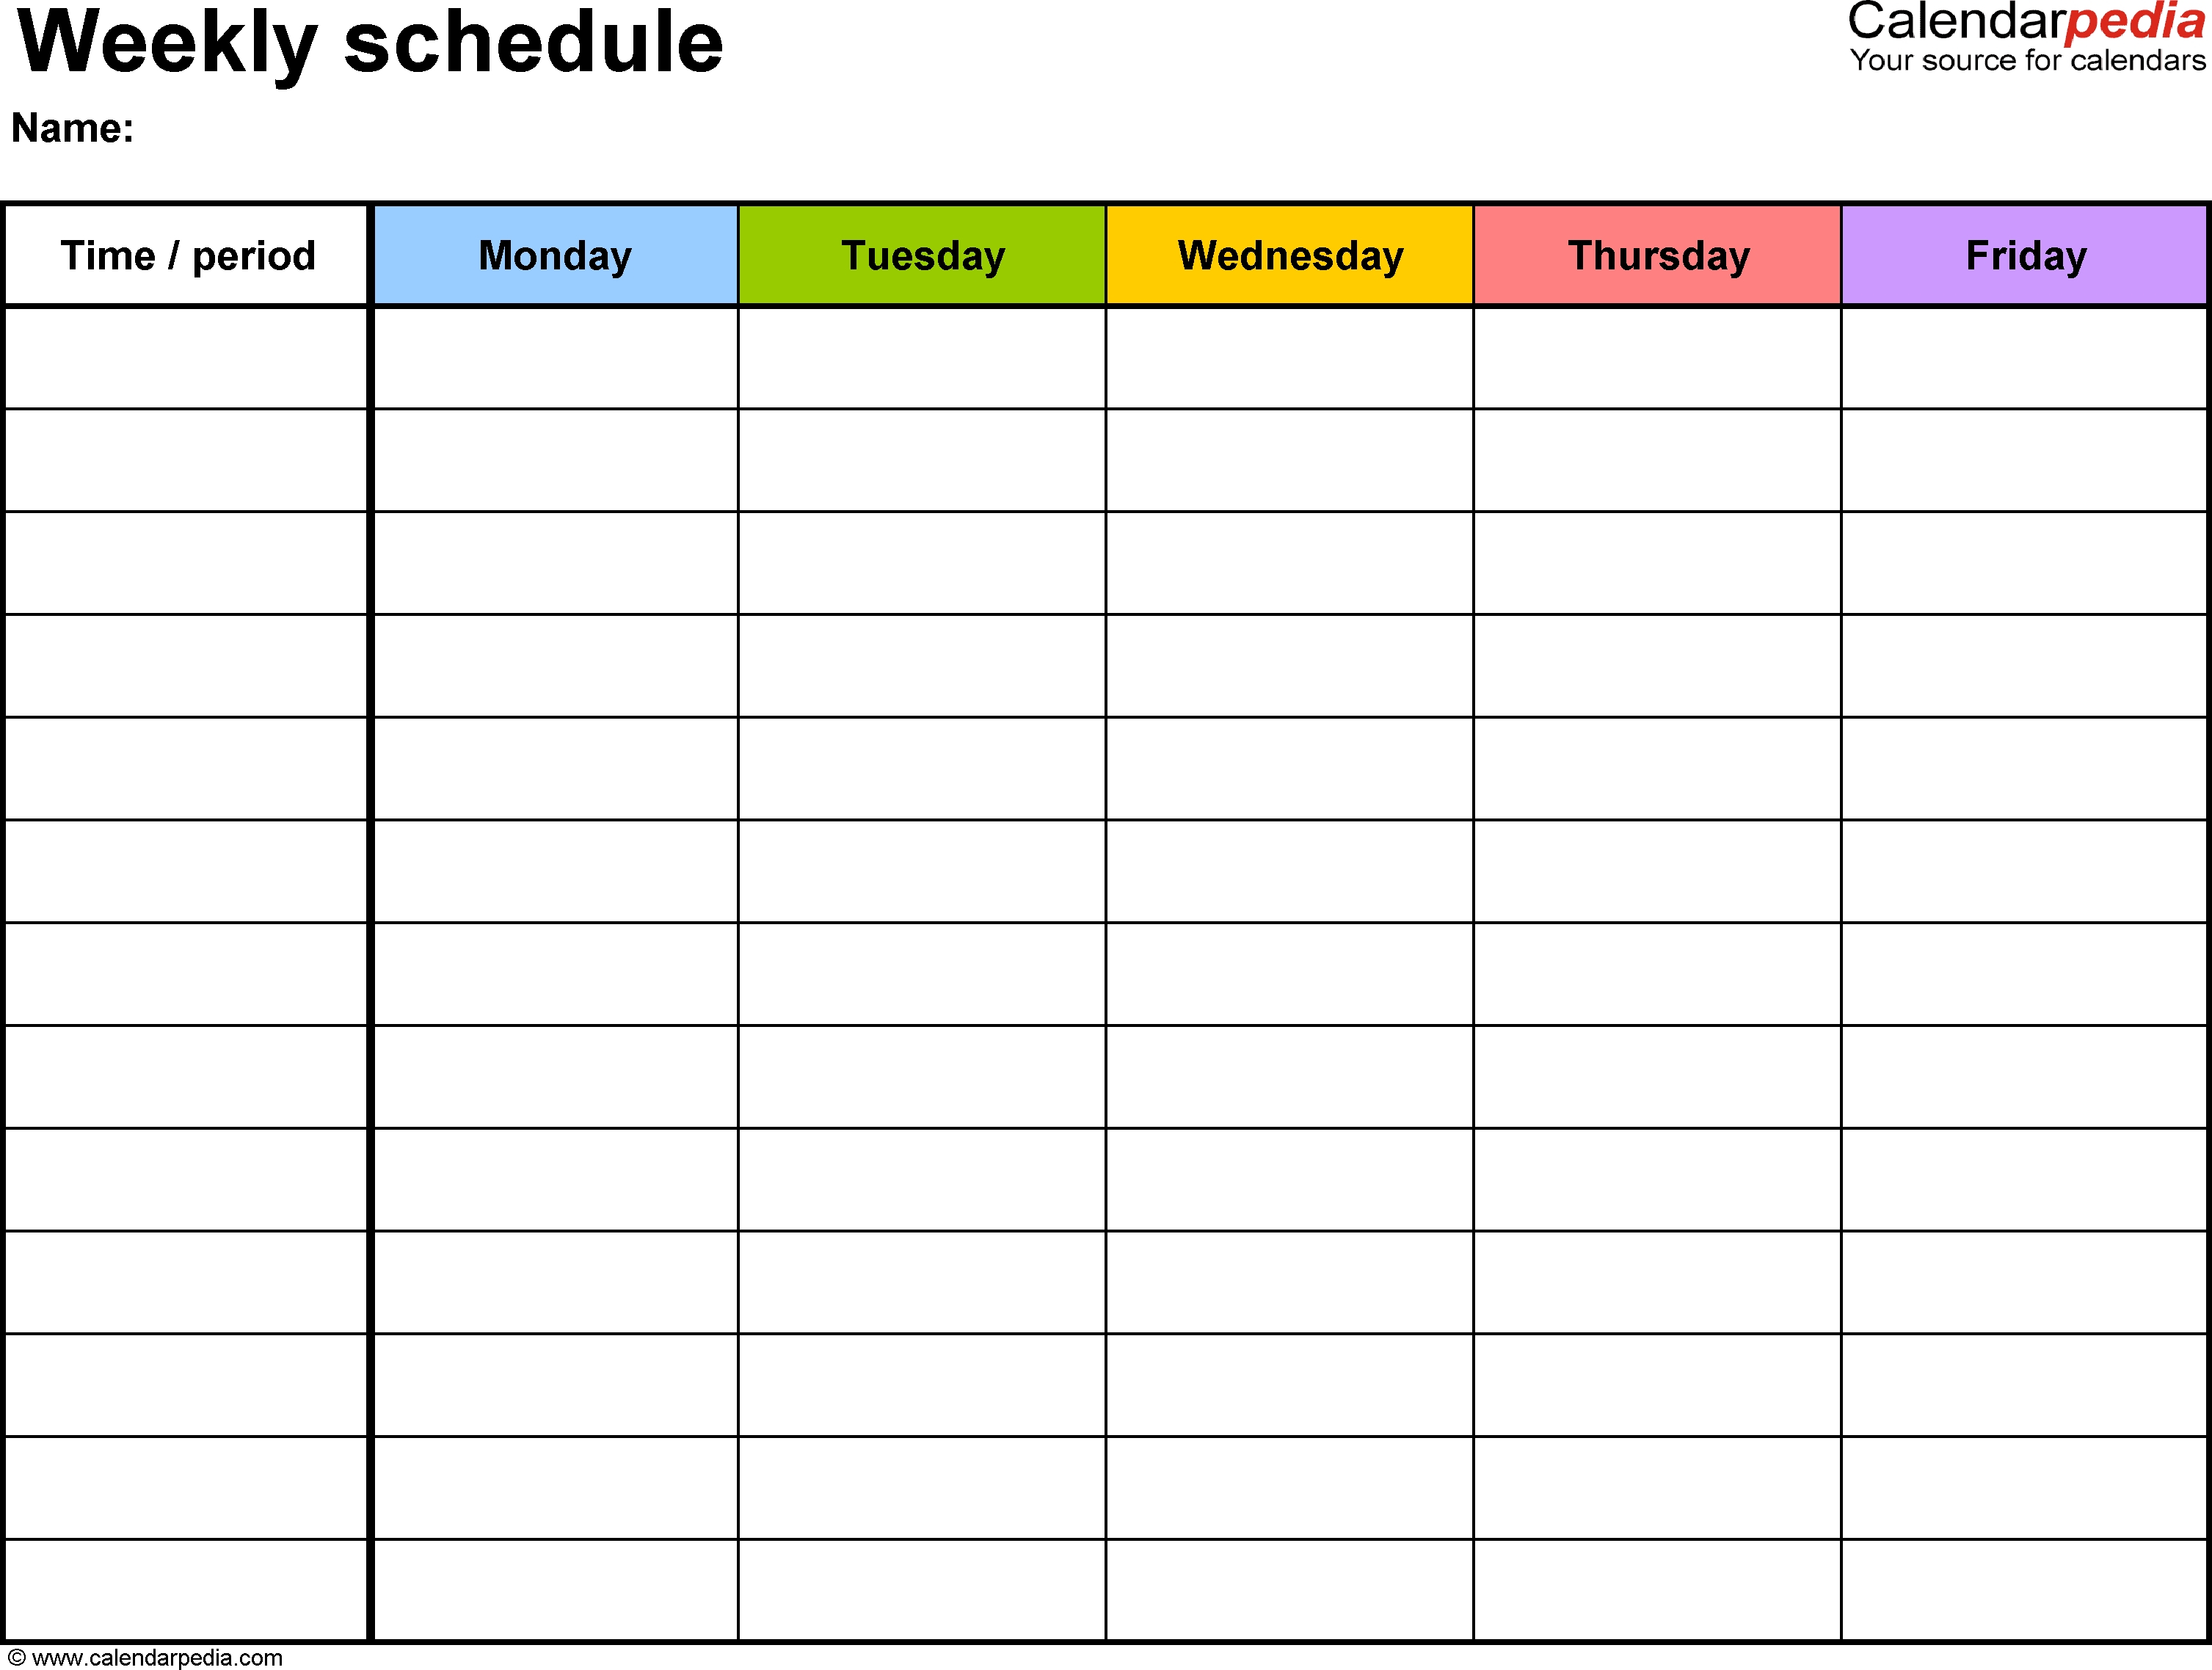 Free Weekly Schedule Templates For Word – 18 Templates Blank Monday Through Friday Schedule Template Free